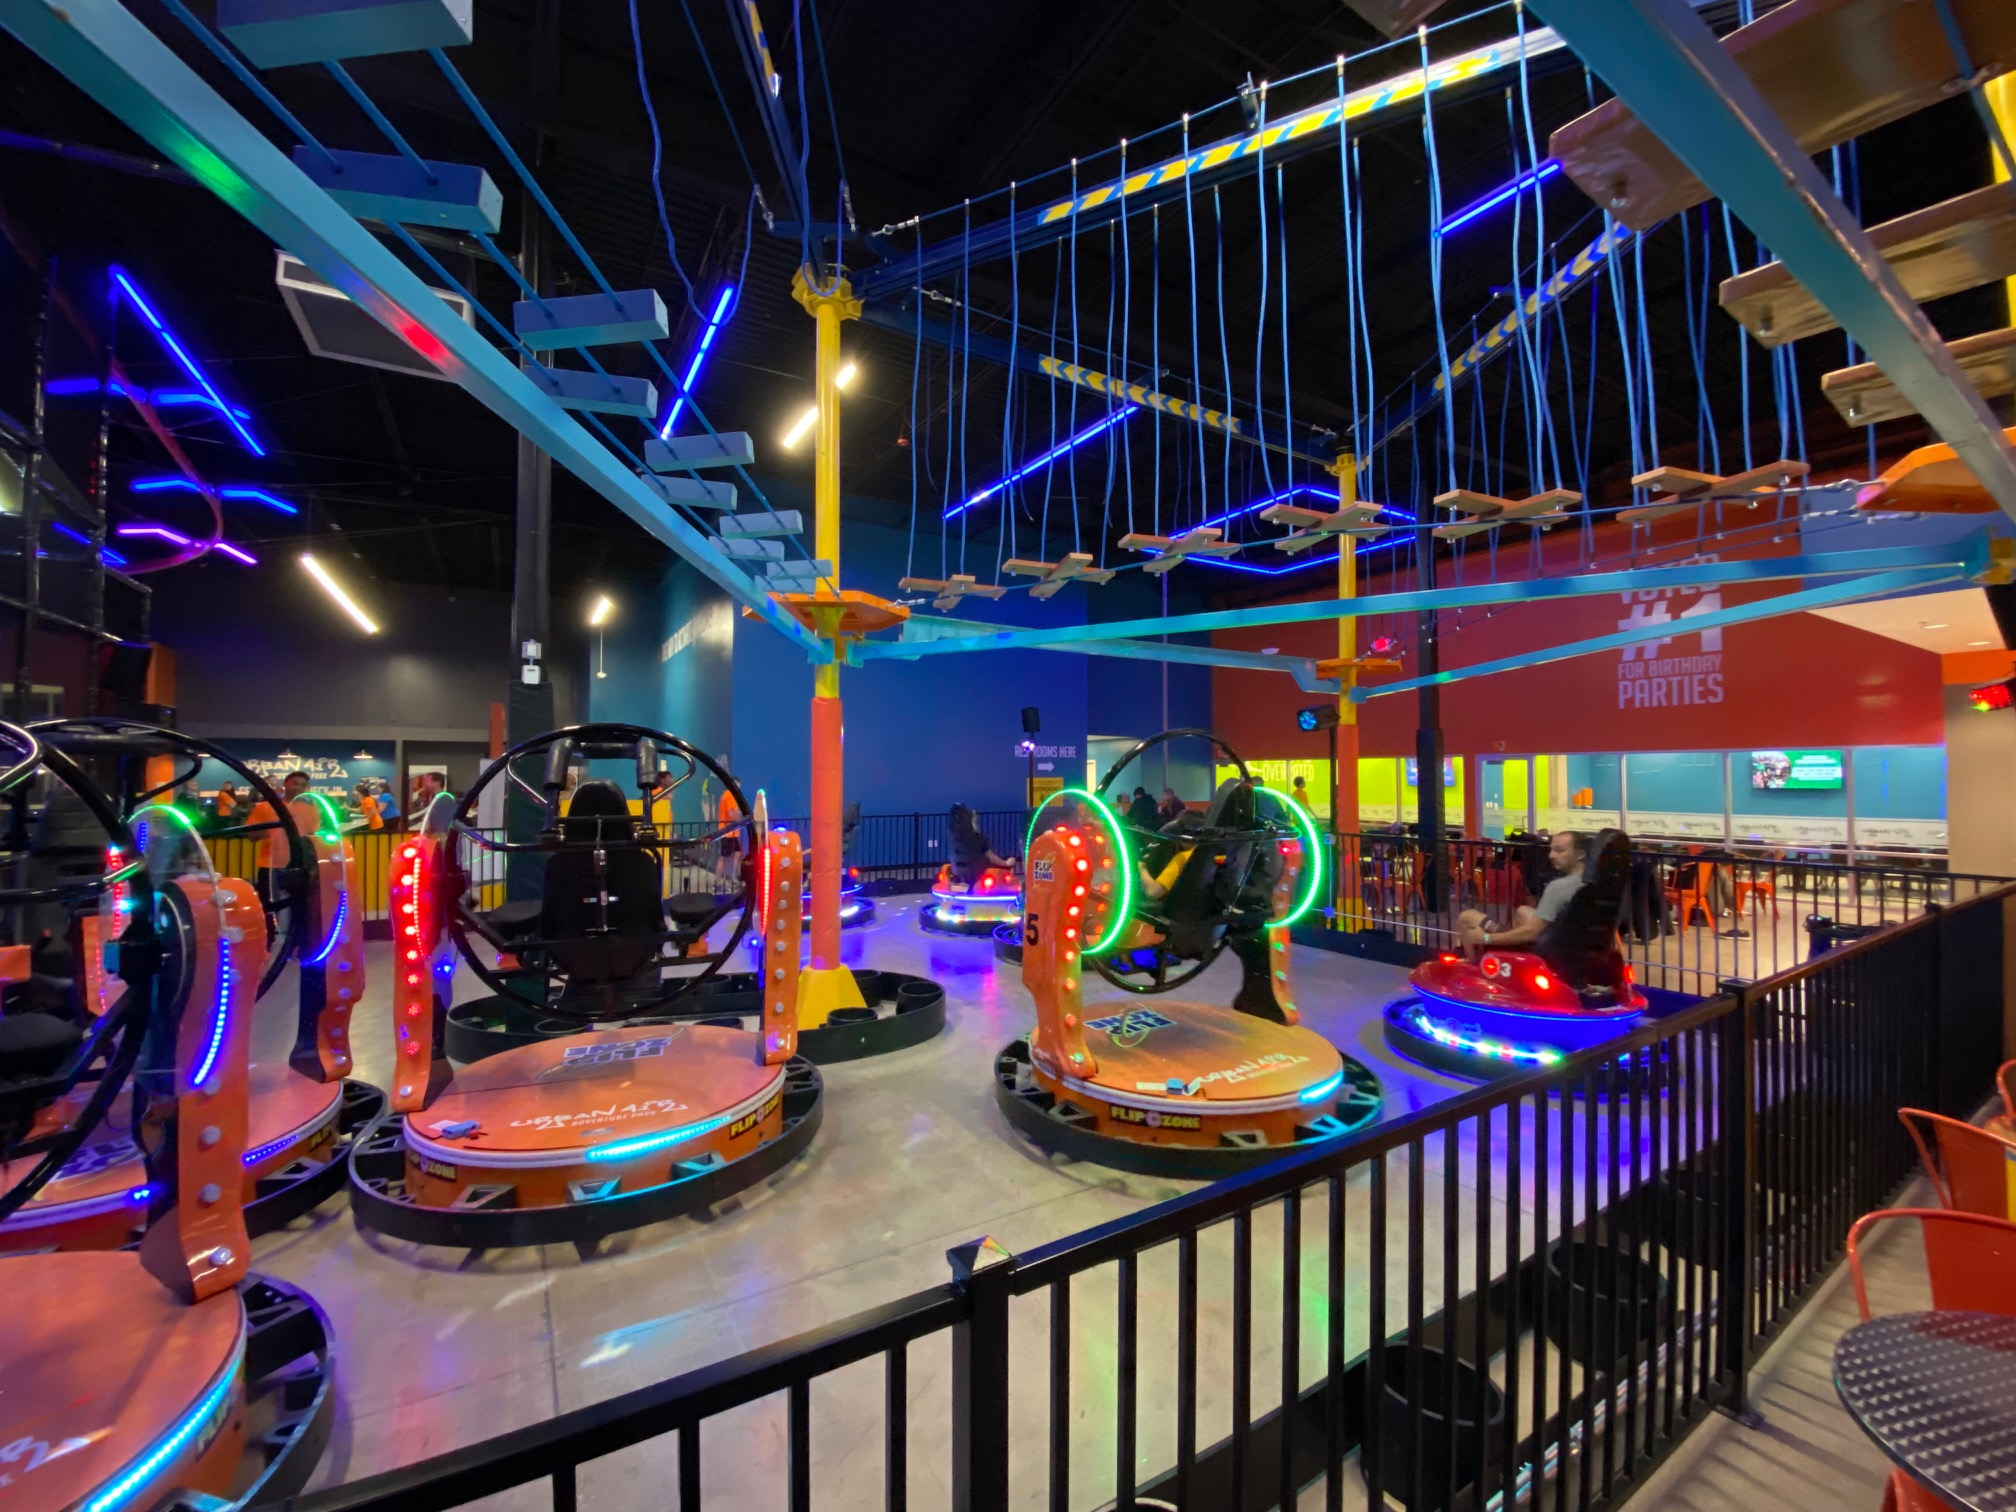 Urban Air Secures Waxahachie Location For New Indoor Trampoline Adventure Park Expansion Solutions